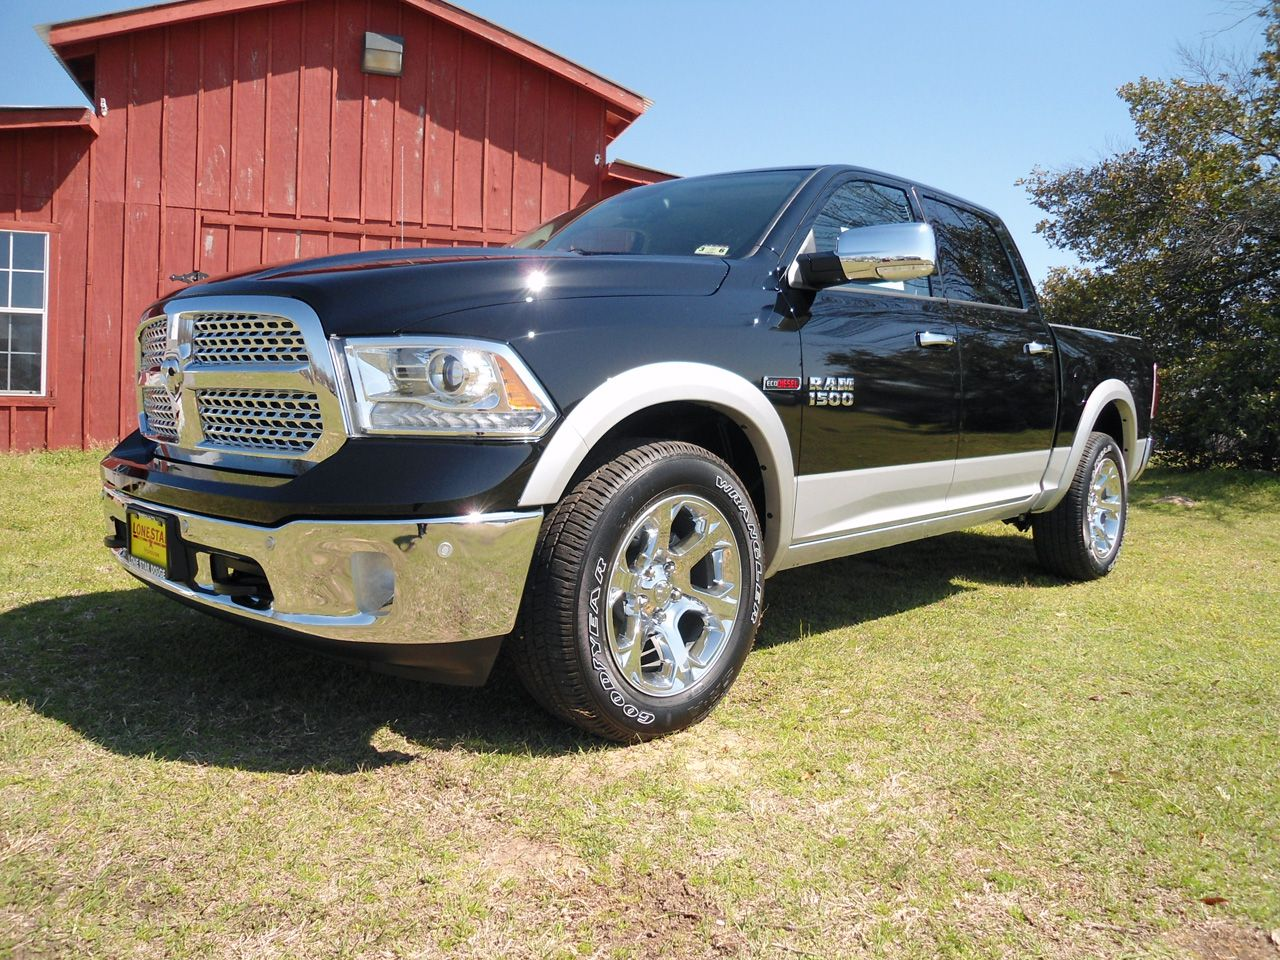 2014 ram 1500 laramie crew cab 4x4 powered by the all new efficient 3 0 liter ecodiesel